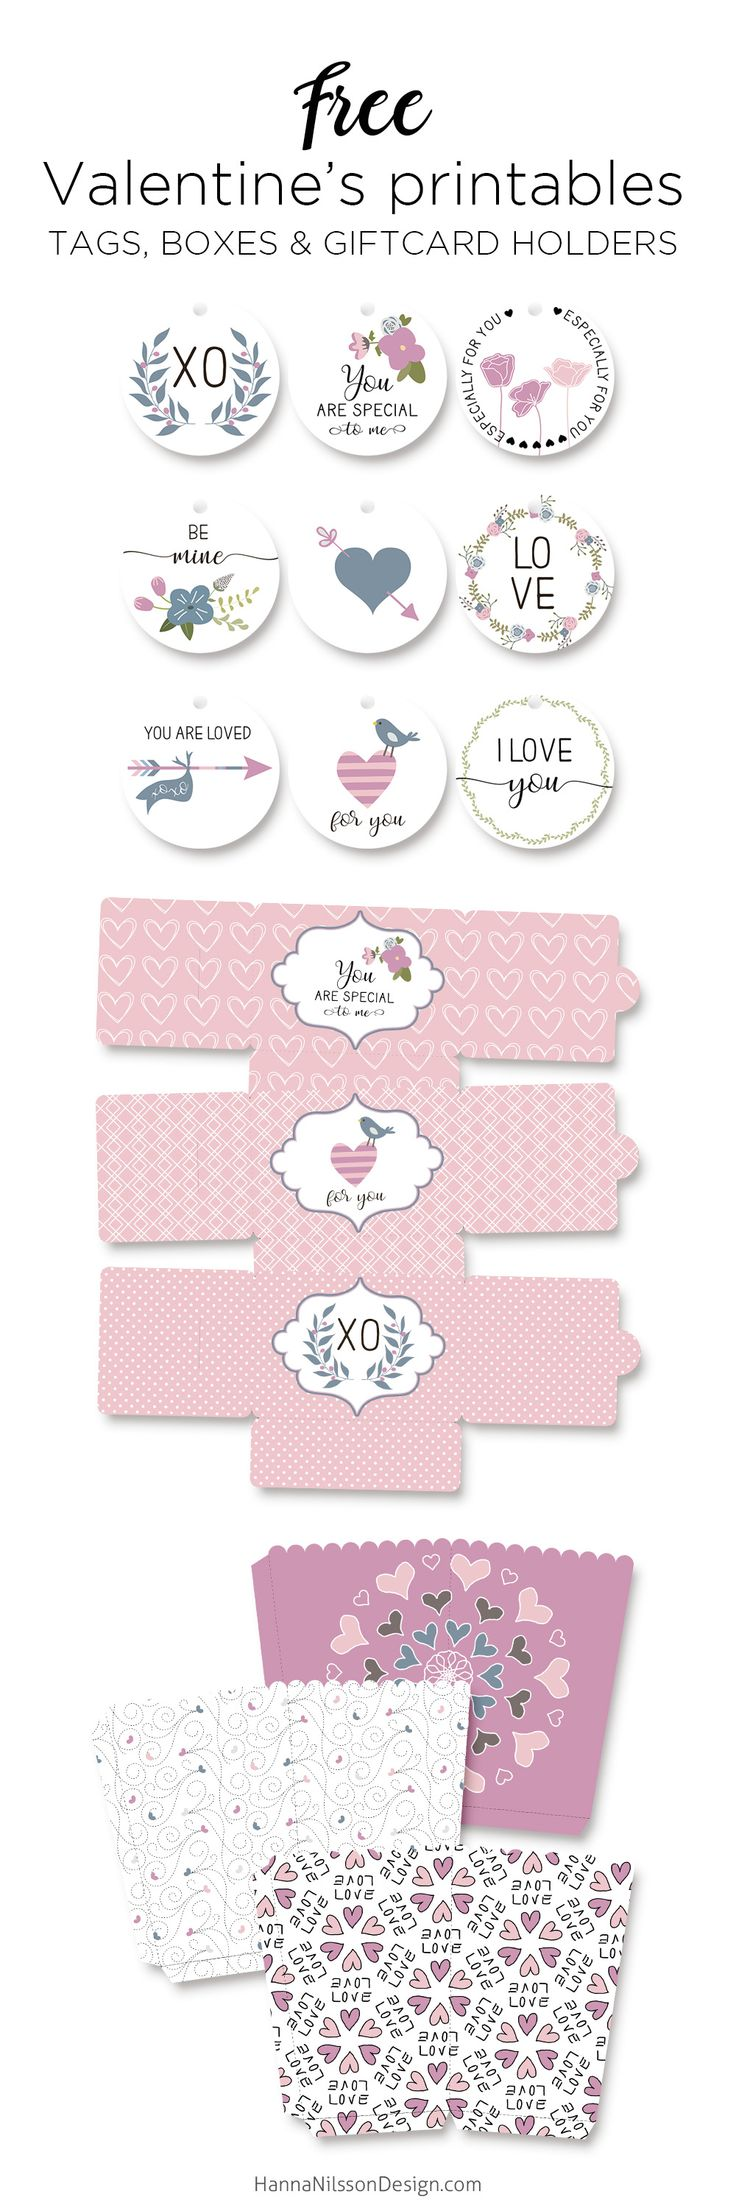 Valentine's Day printables - tags, popcorn boxes + giftcard holders ----------------- valentine's day, love, xoxo, cards, printables, wall decor, tags, boxes, chocolate, treat boxes, gifts, banners, valentines decorations, party printables, templates